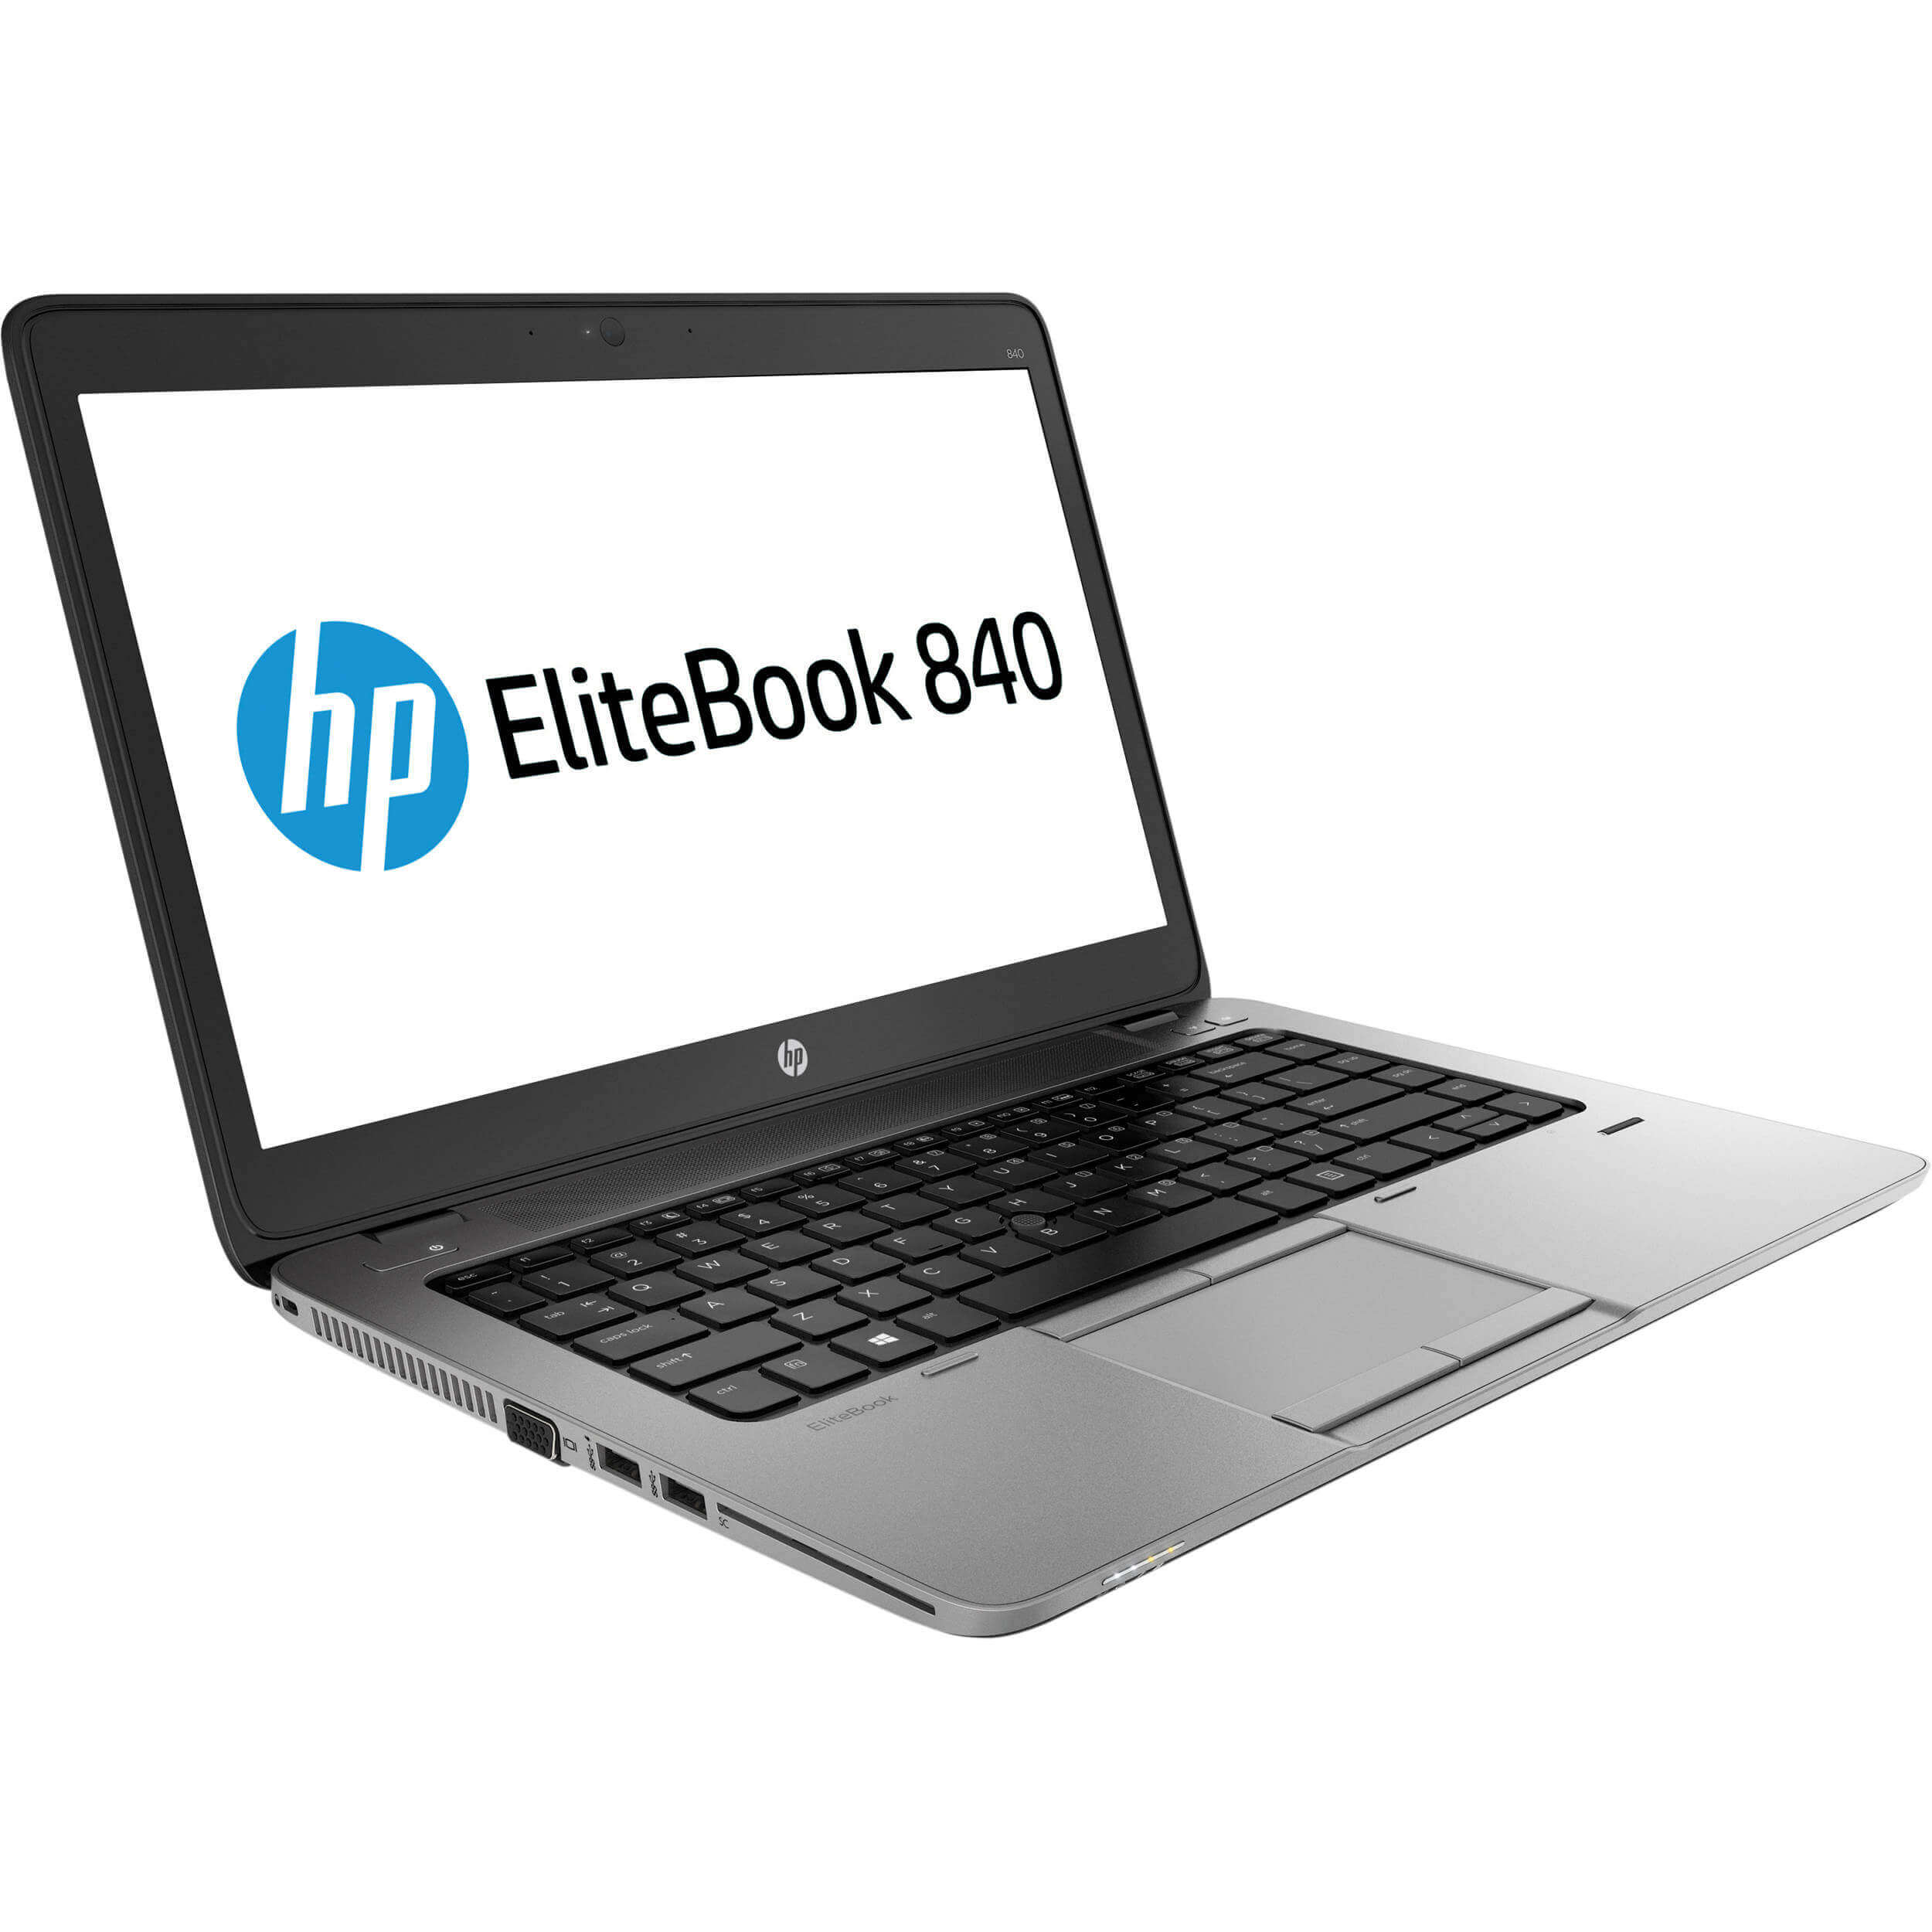 HP ELITEBOOK 840 G1 I5-4300U 1,9 / 4096 MB DDR3L / 120 GB SSD NOWY / WINDOWS 10 PRO  / 14